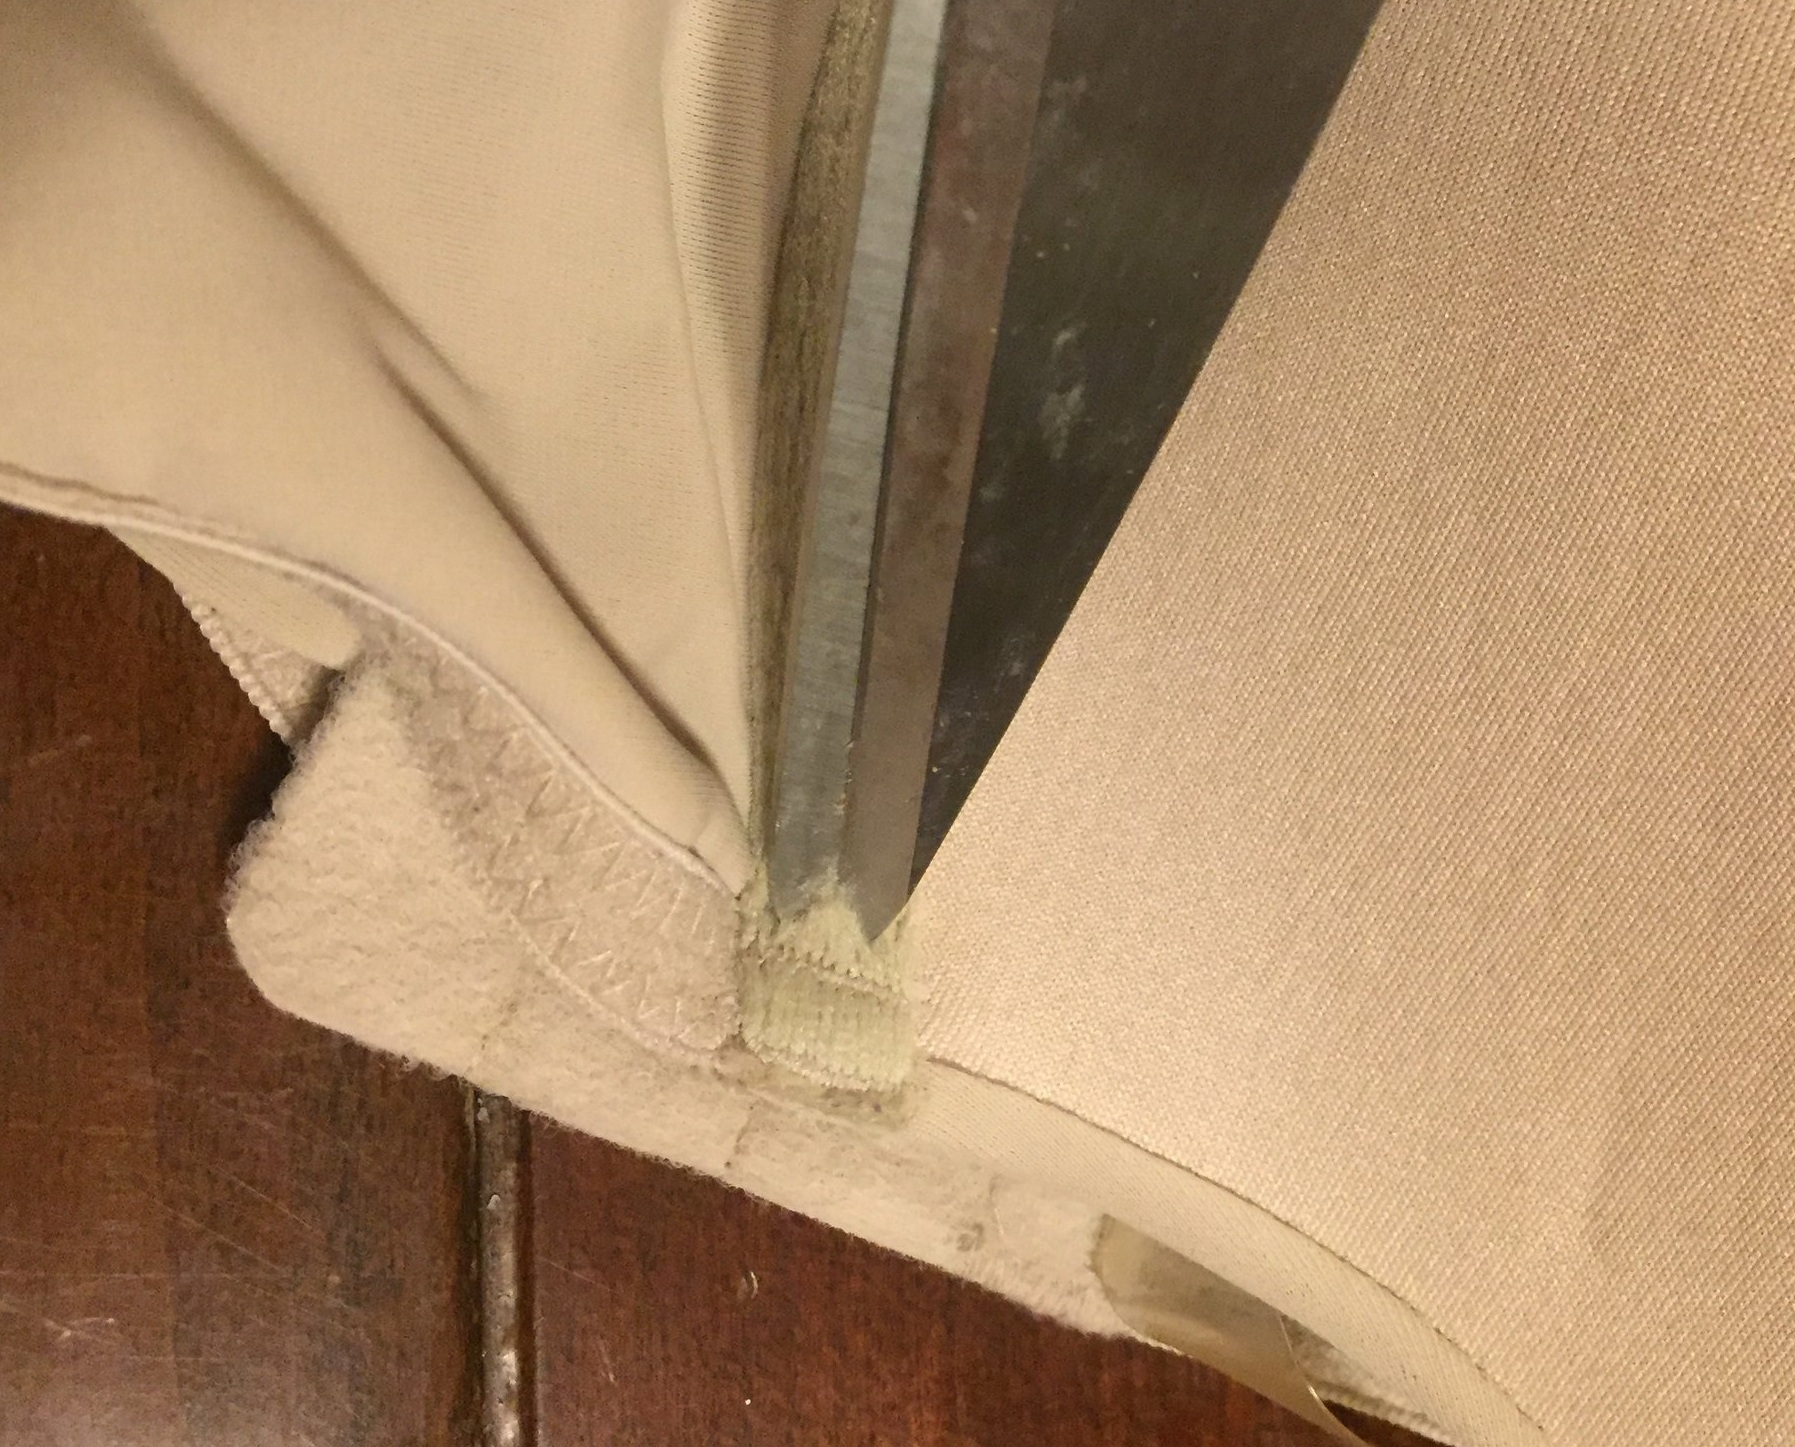 Find the end of the underwire and make a snip in the fabric.